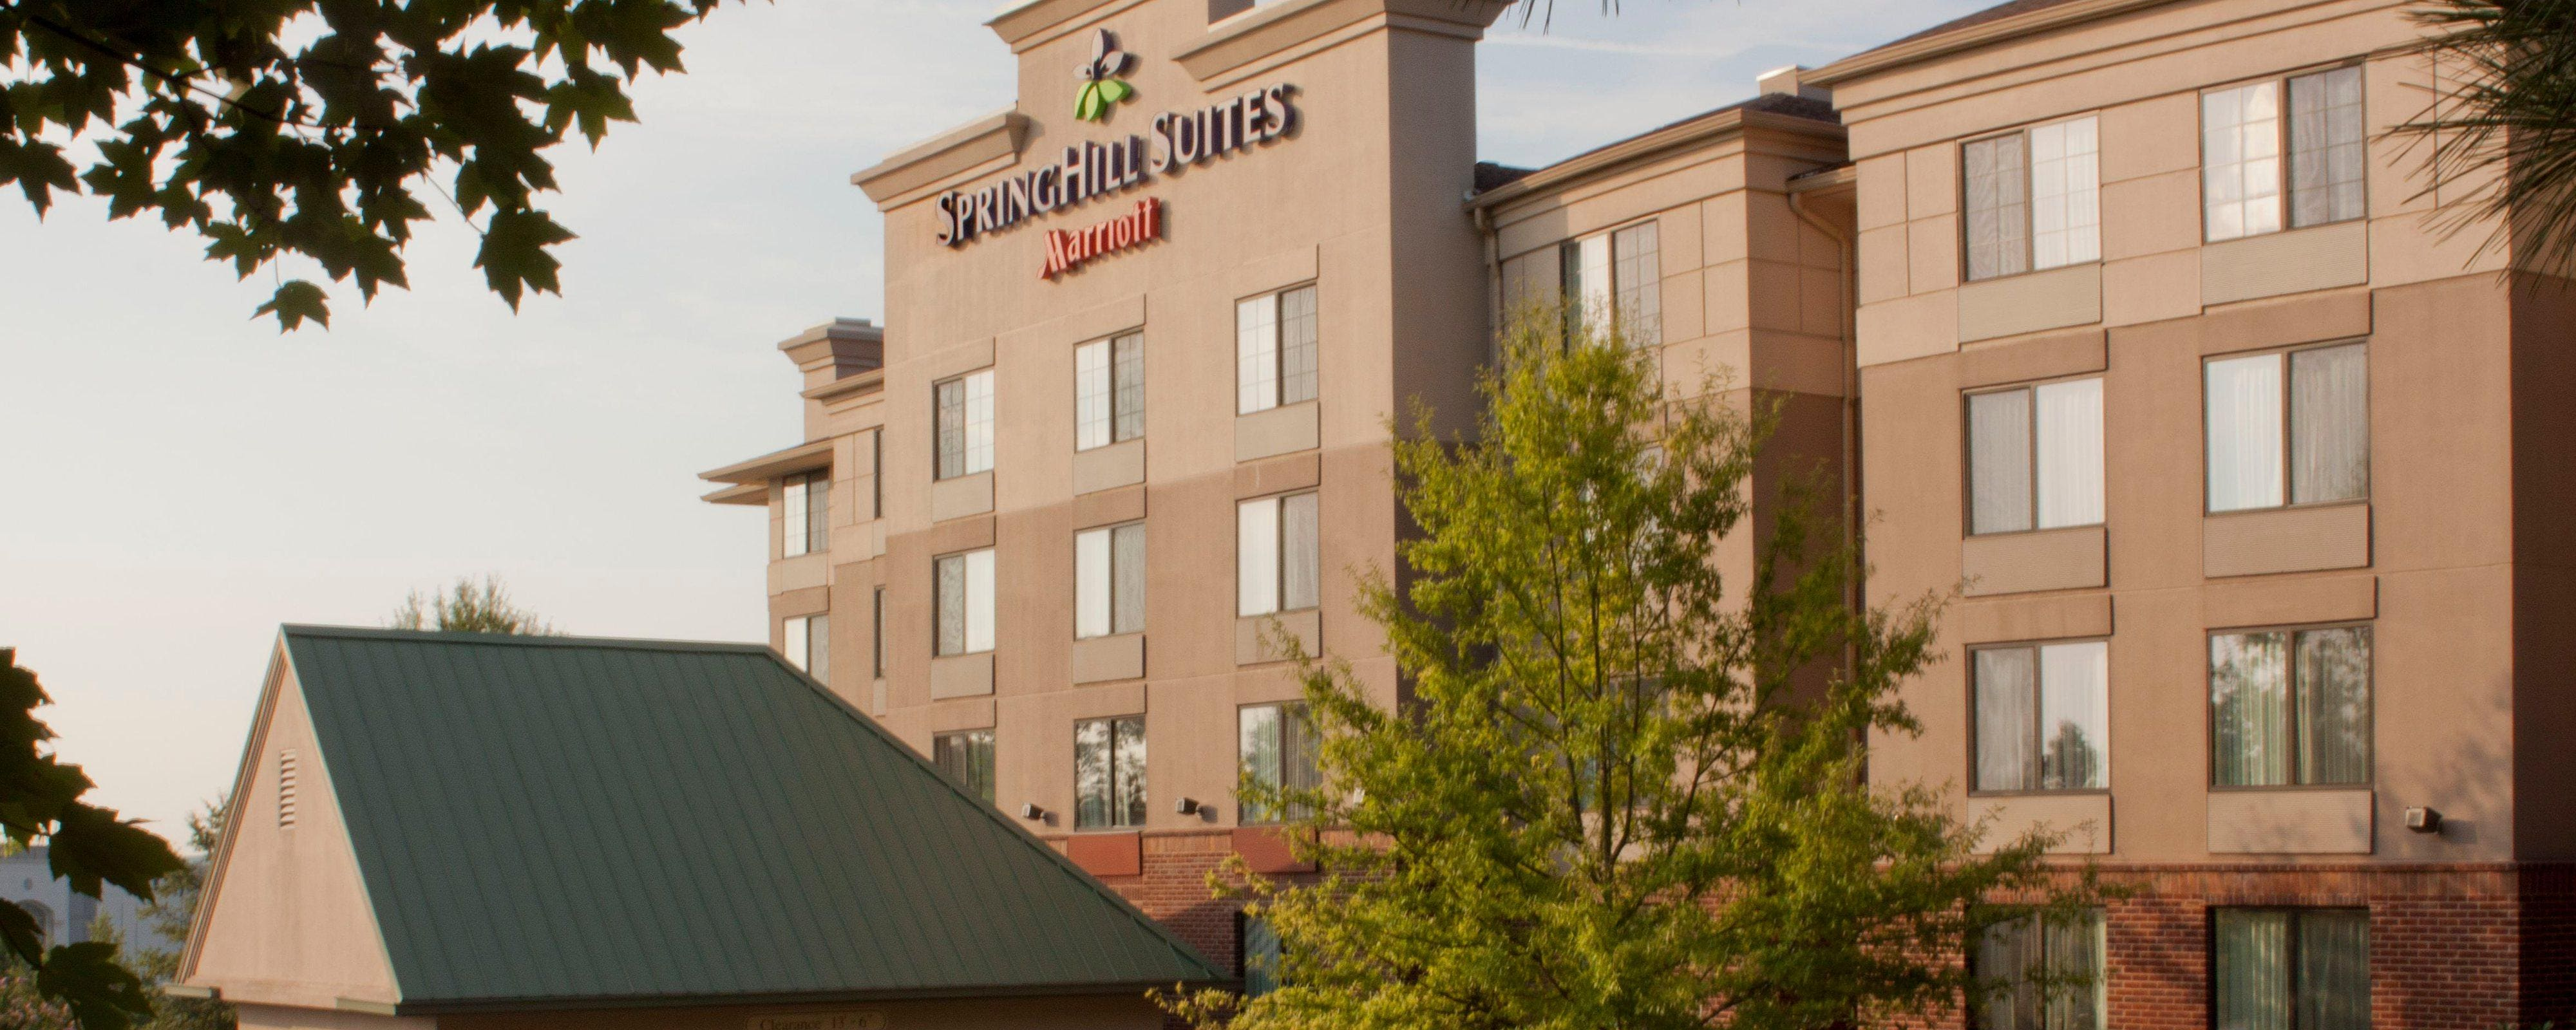 Hotel SpringHill Suites Atlanta Buford/Mall of Georgia